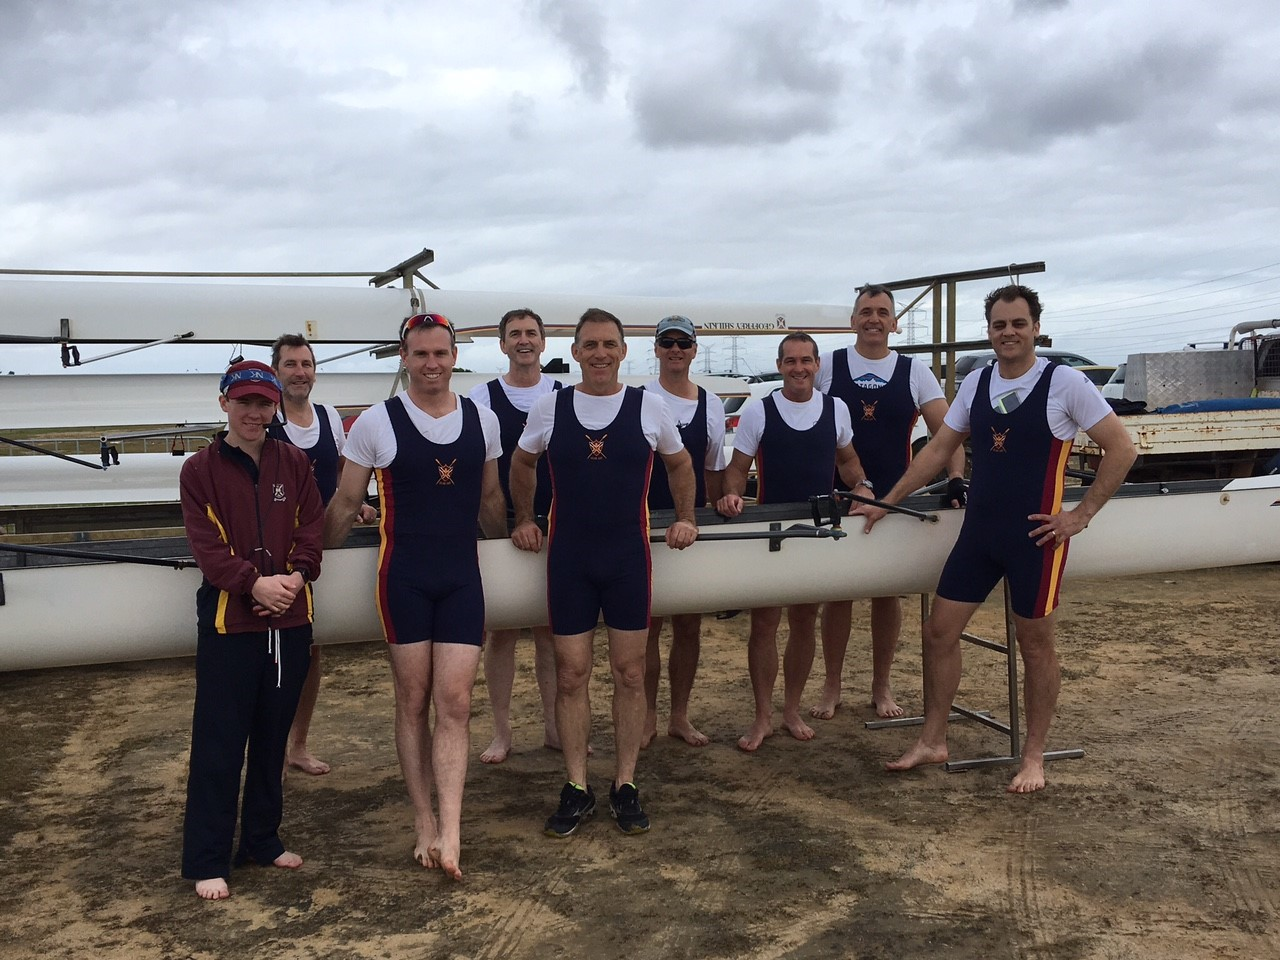 scotch masters rowing crew